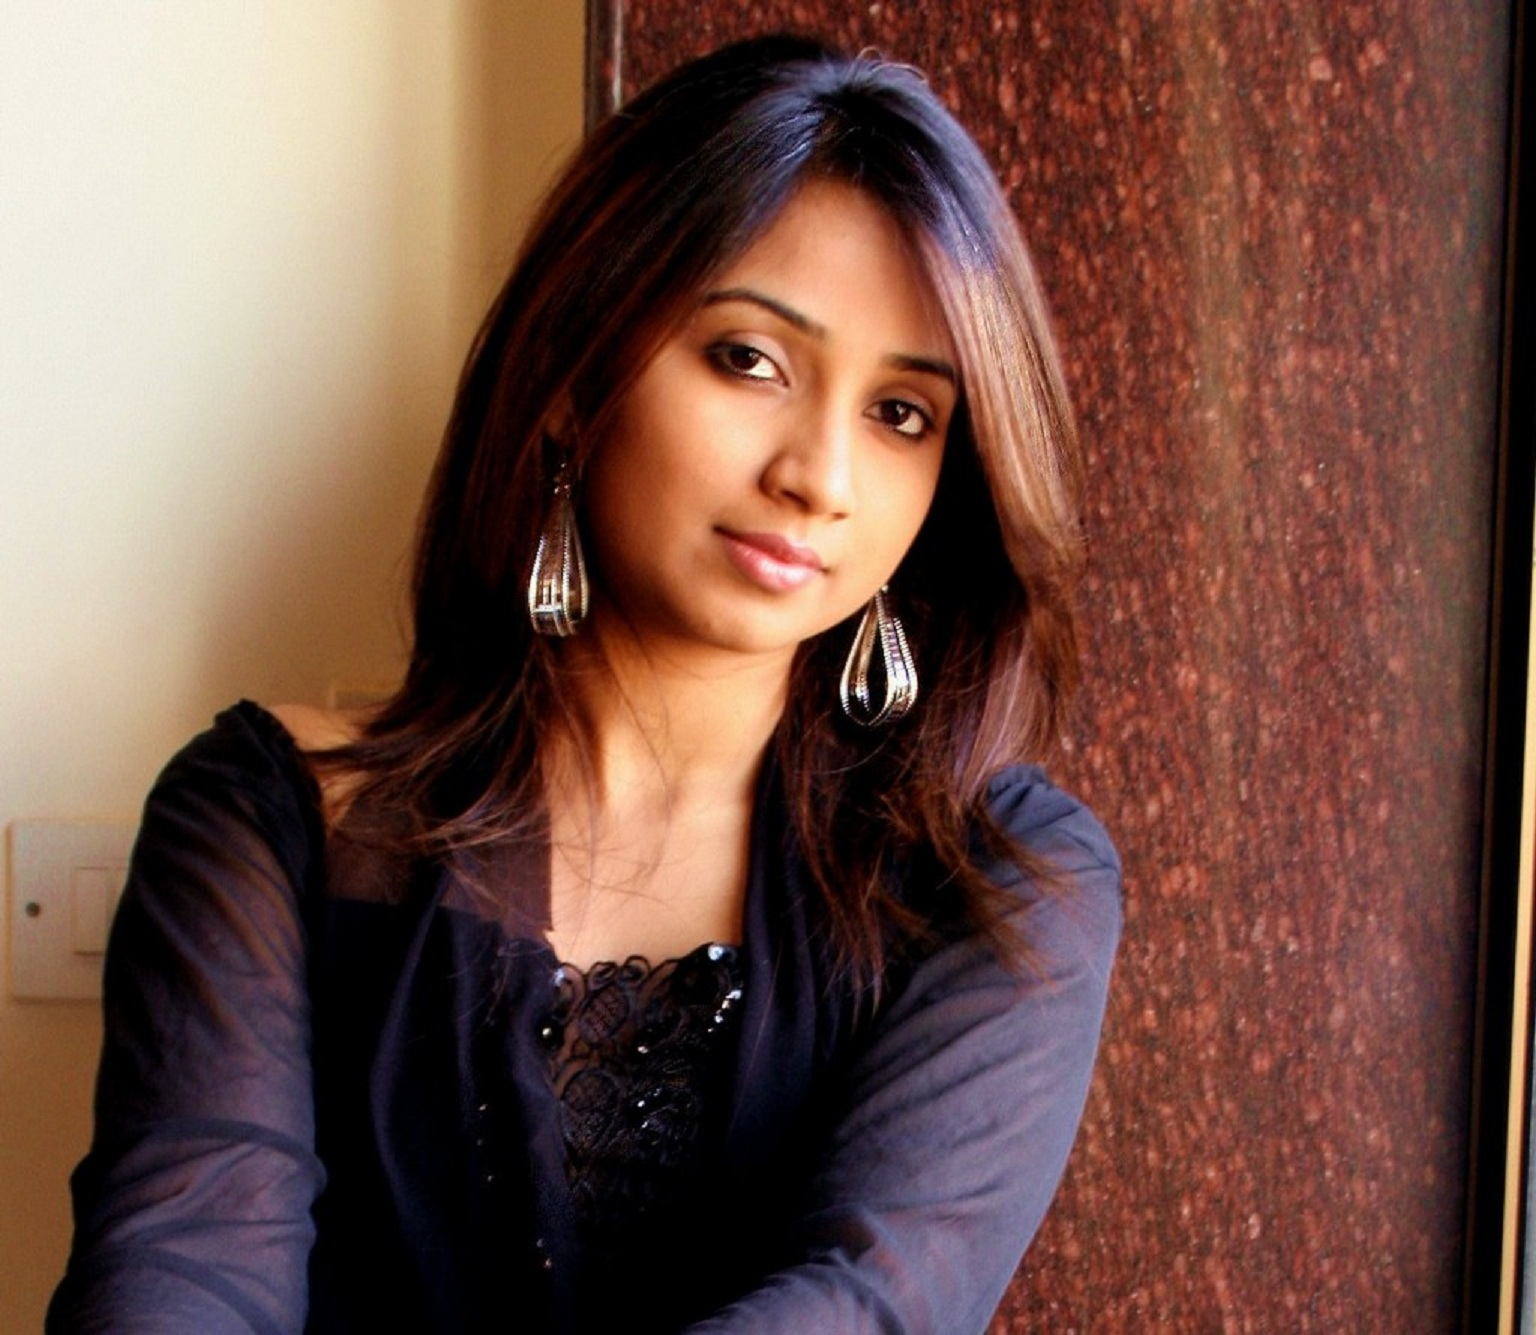 Shreya ghoshal dating shekhar ravjiani twitter. Dating for one night.